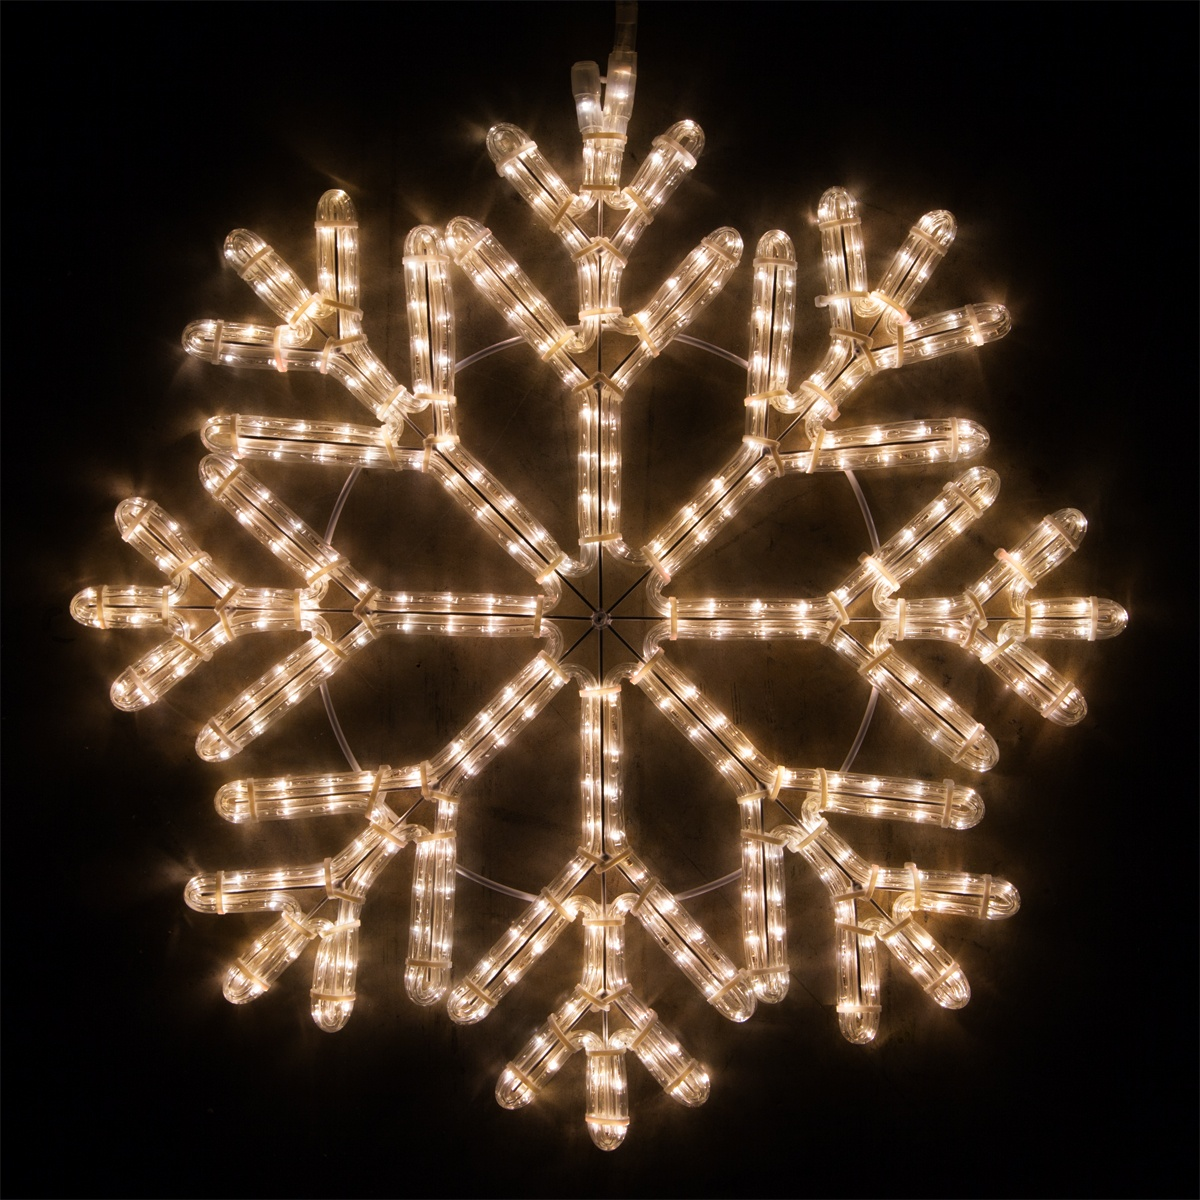 Xmas Tree Hd Wallpaper Snowflakes Amp Stars 24 Quot Led 40 Point Snowflake Warm